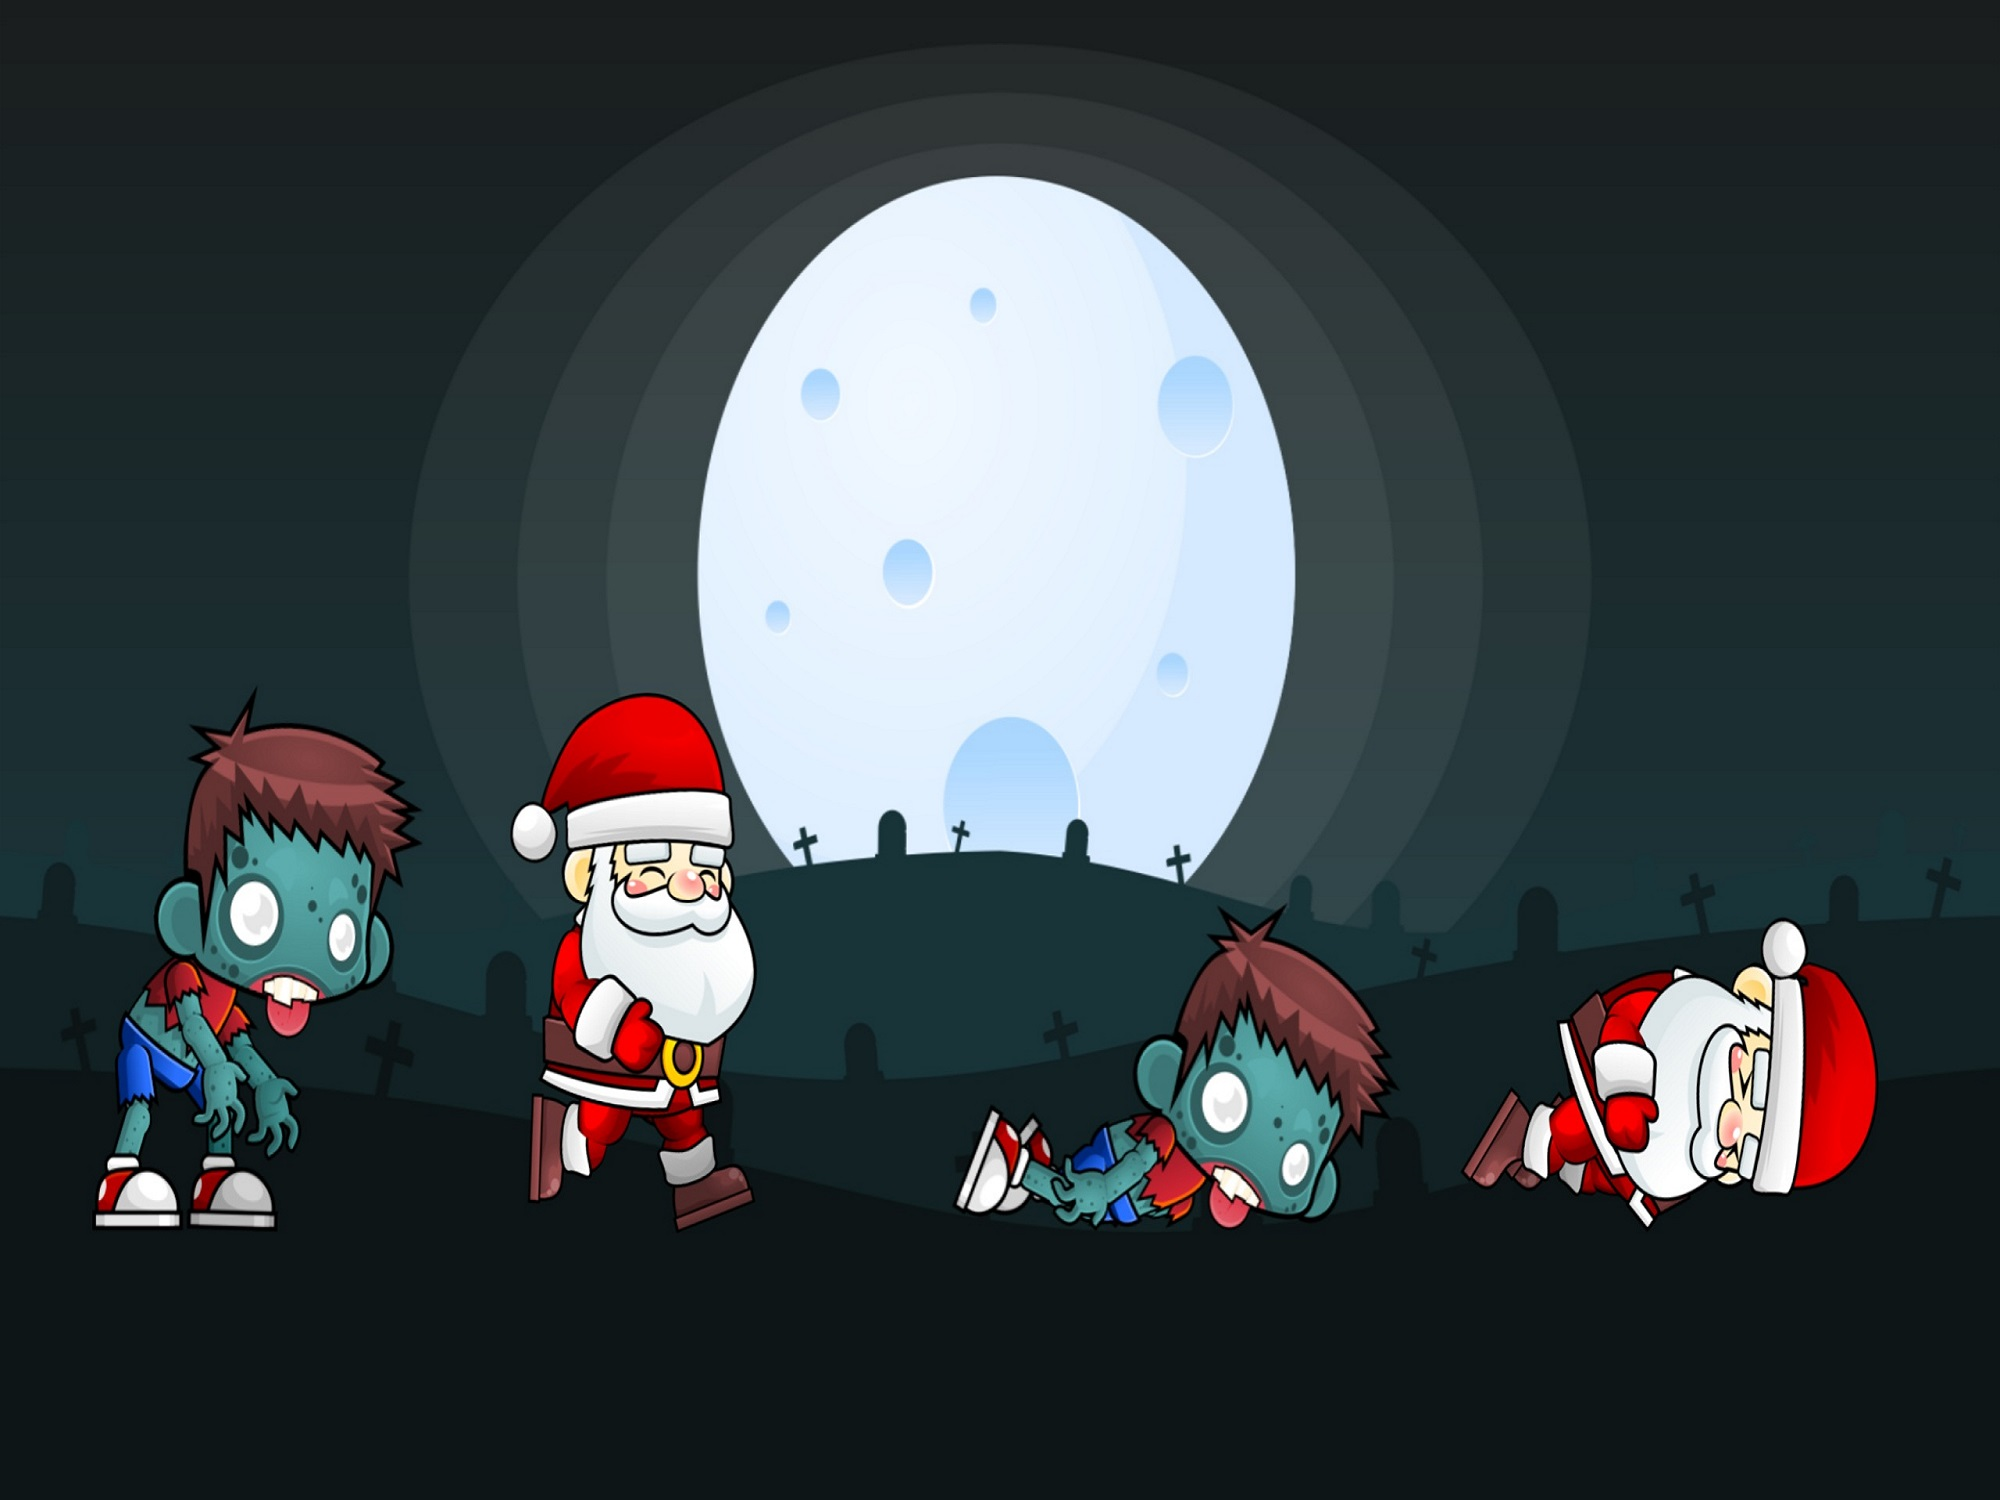 Zombies are after the Santa